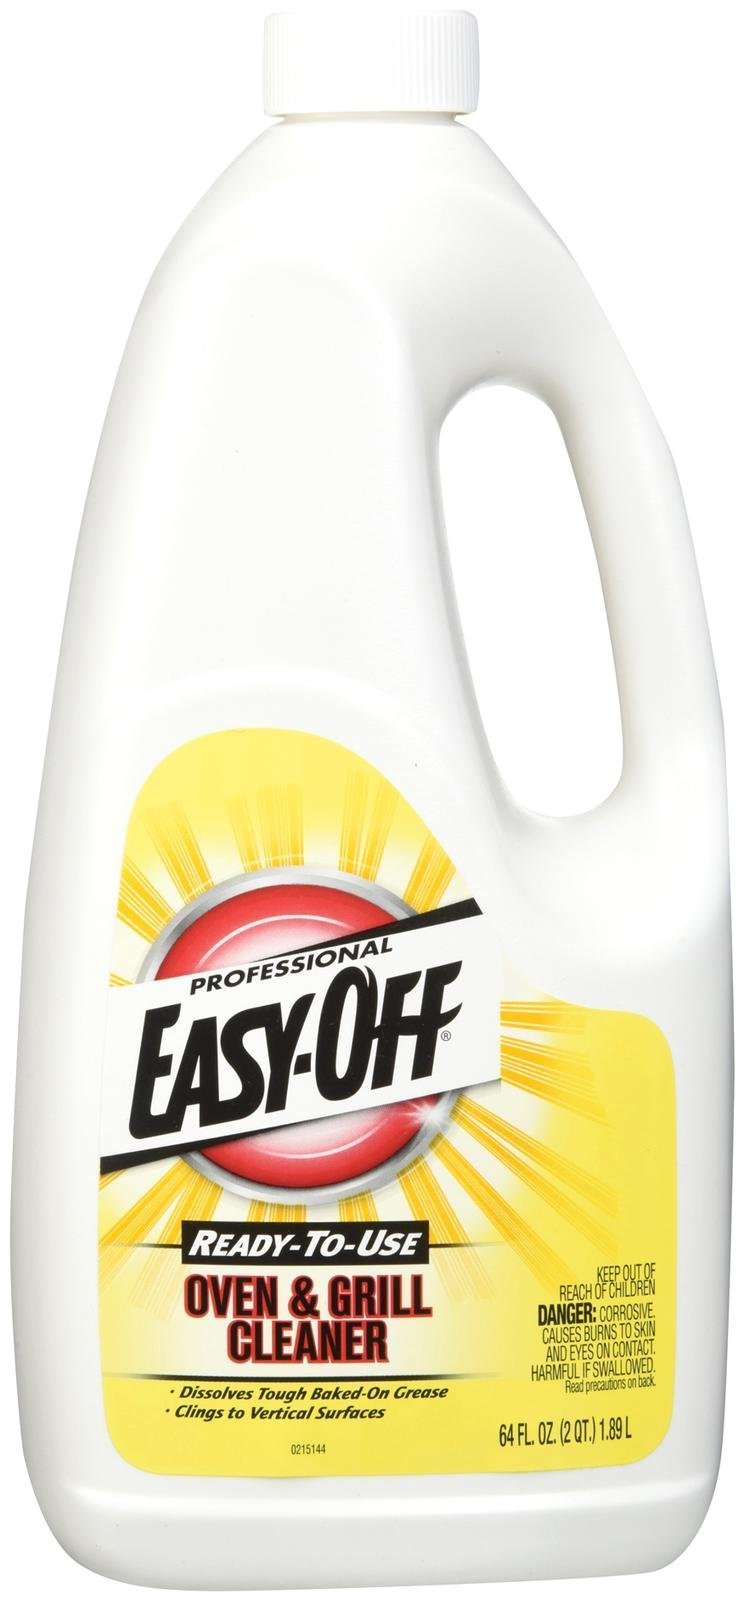 Easy-Off Professional Oven and Grill Cleaner, 64 Ounce by Easy Off